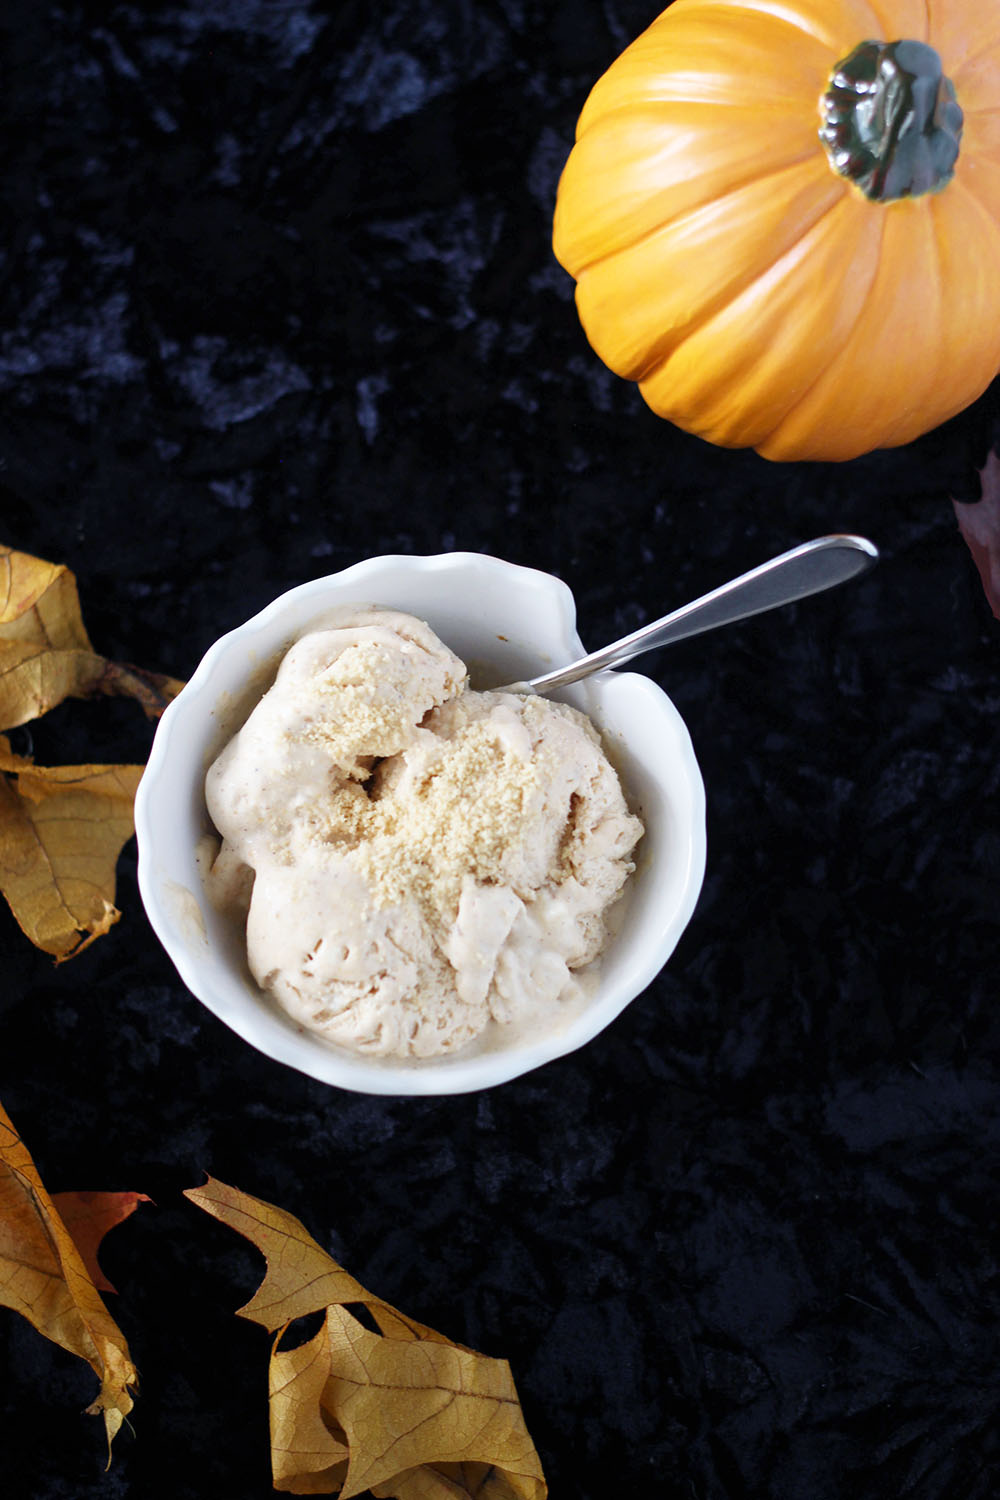 DIY pumpkin ice cream without an ice cream maker. Make homemade pumpkin ice cream with your choice of mix-ins.